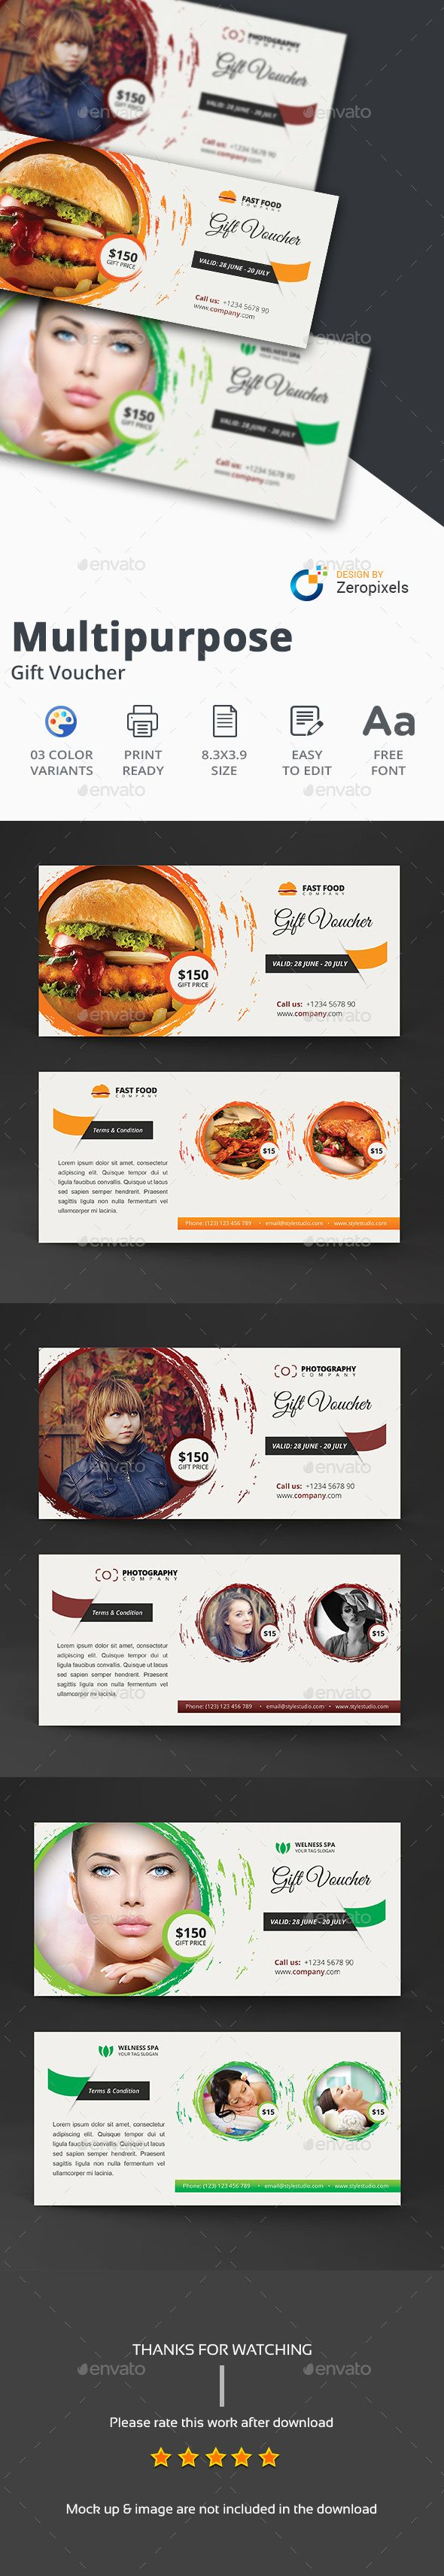 Multipurpose Gift Card Certificate / Voucher Template PSD. Download here: https://graphicriver.net/item/multipurpose-gift-card-voucher/17356018?ref=ksioks